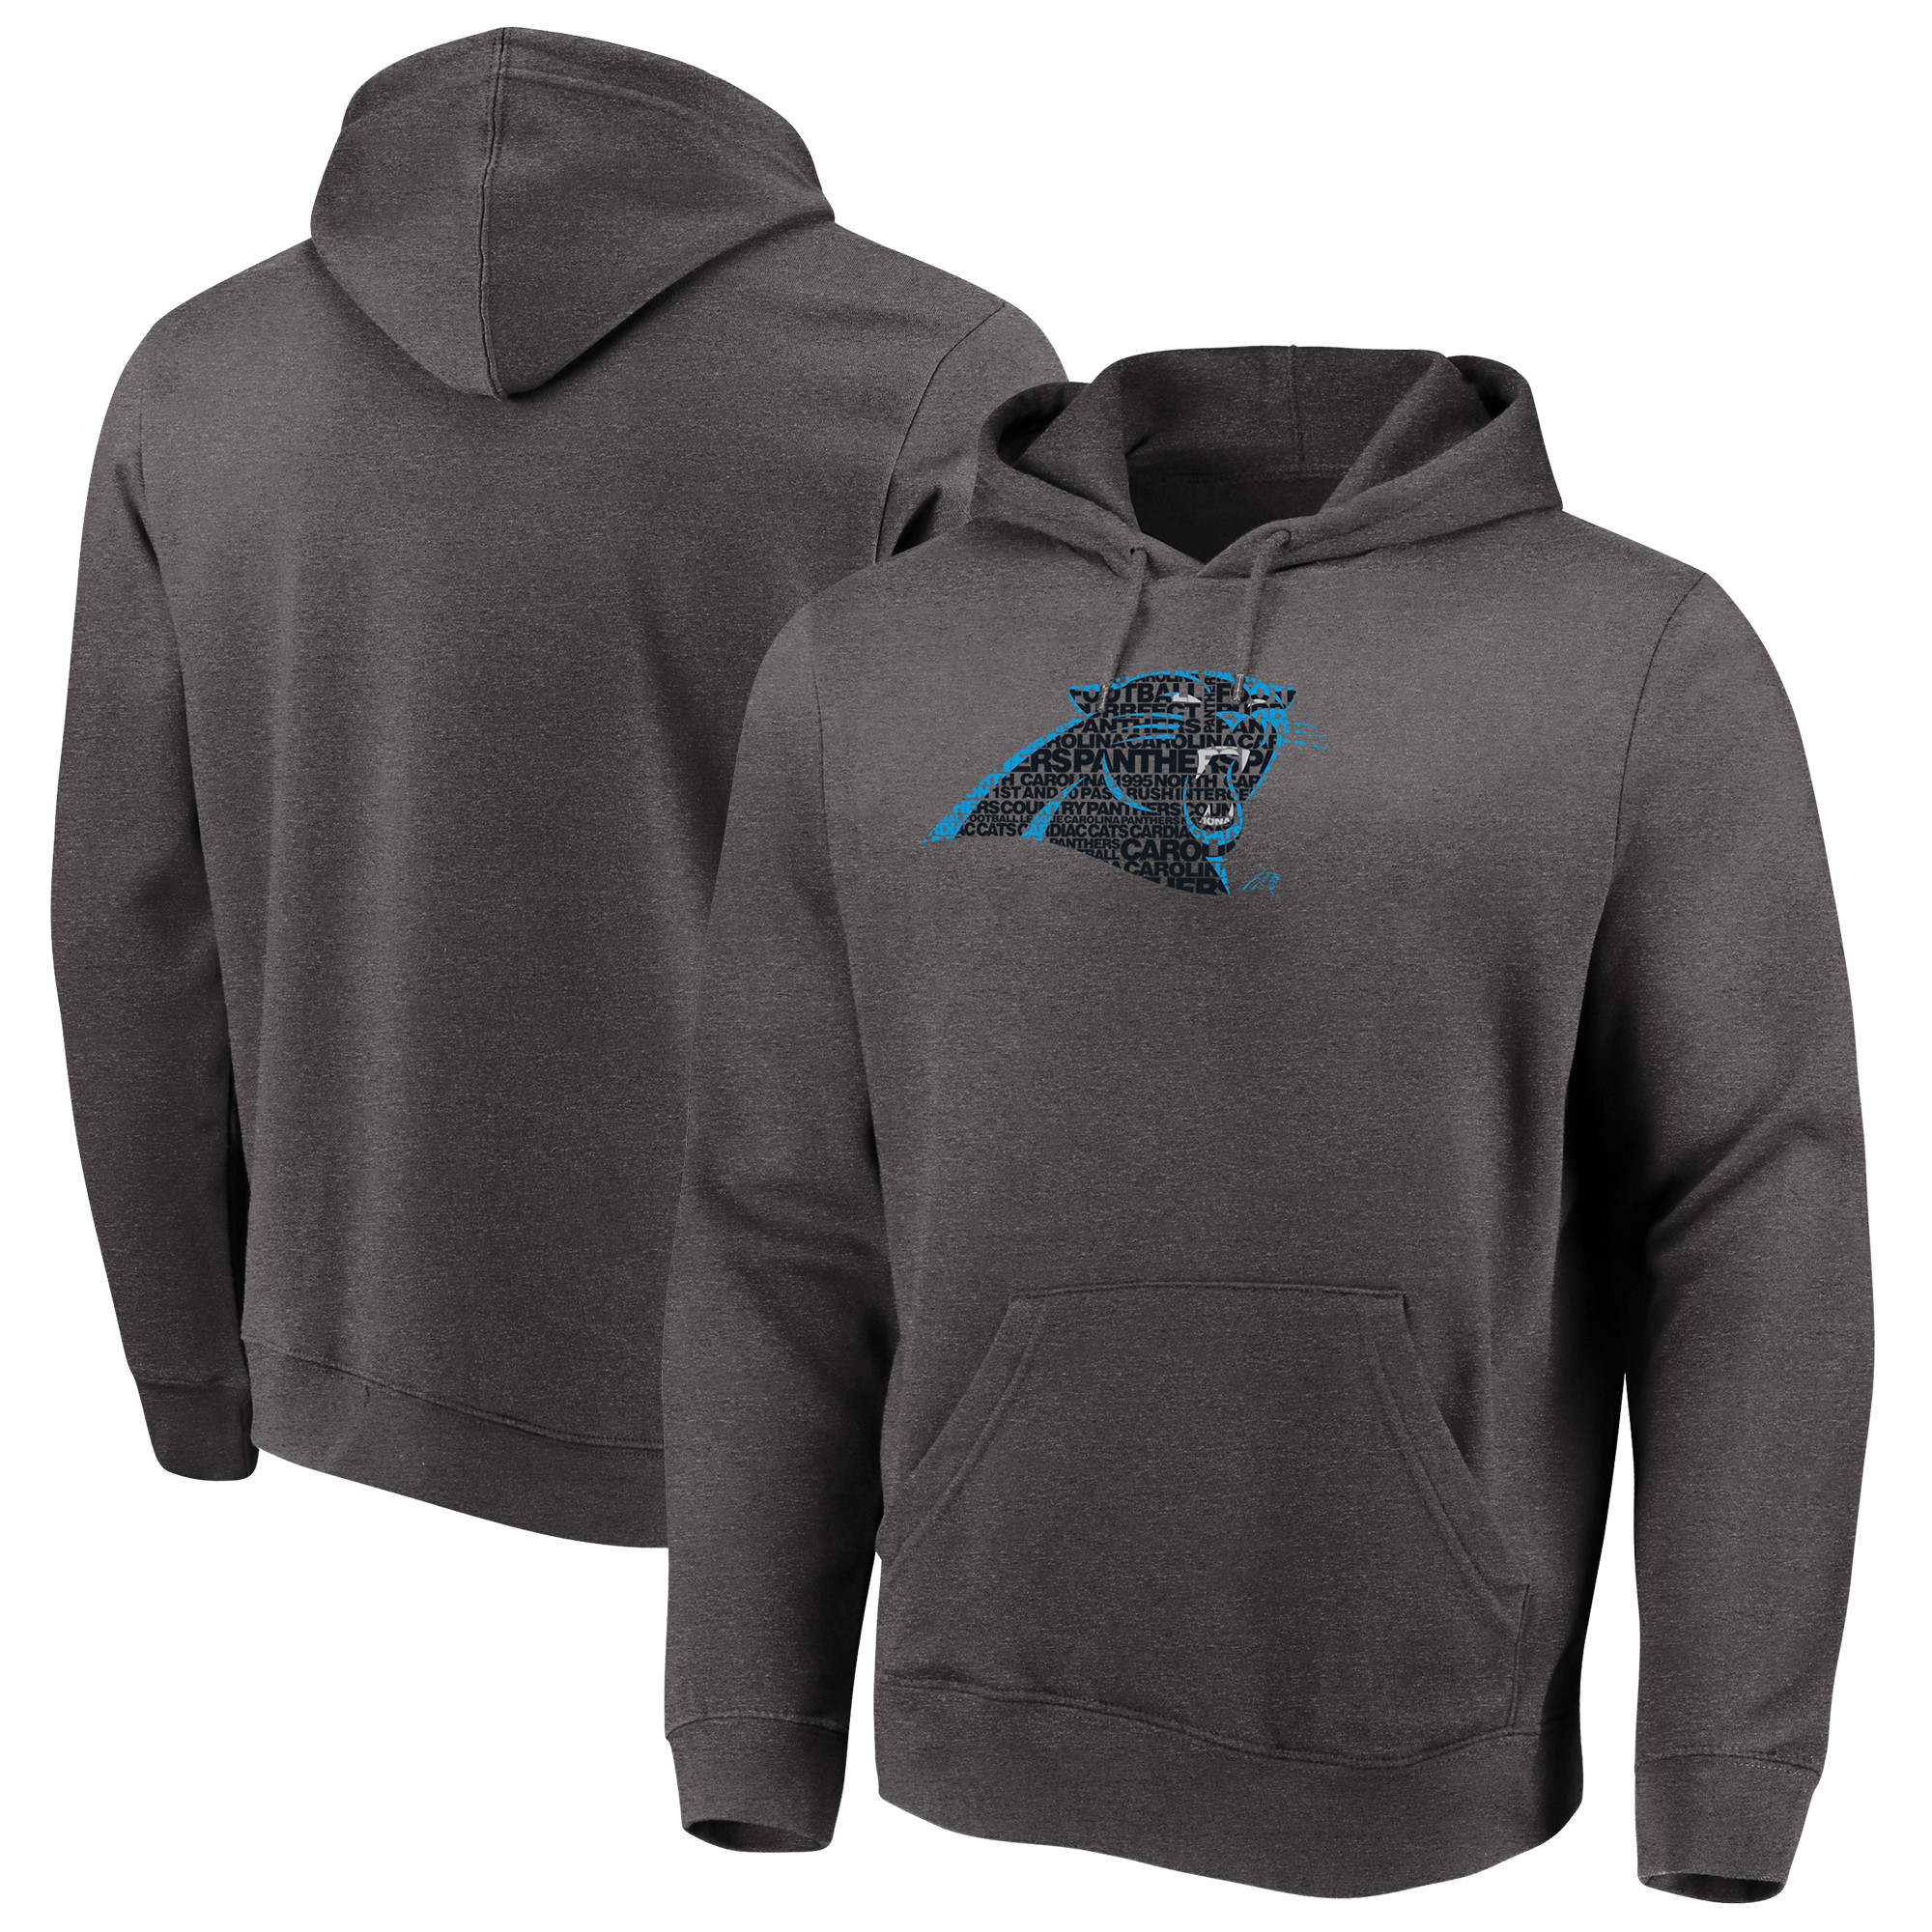 Carolina Panthers Majestic Big & Tall Line of Scrimmage Pullover Hoodie - Heathered Charcoal